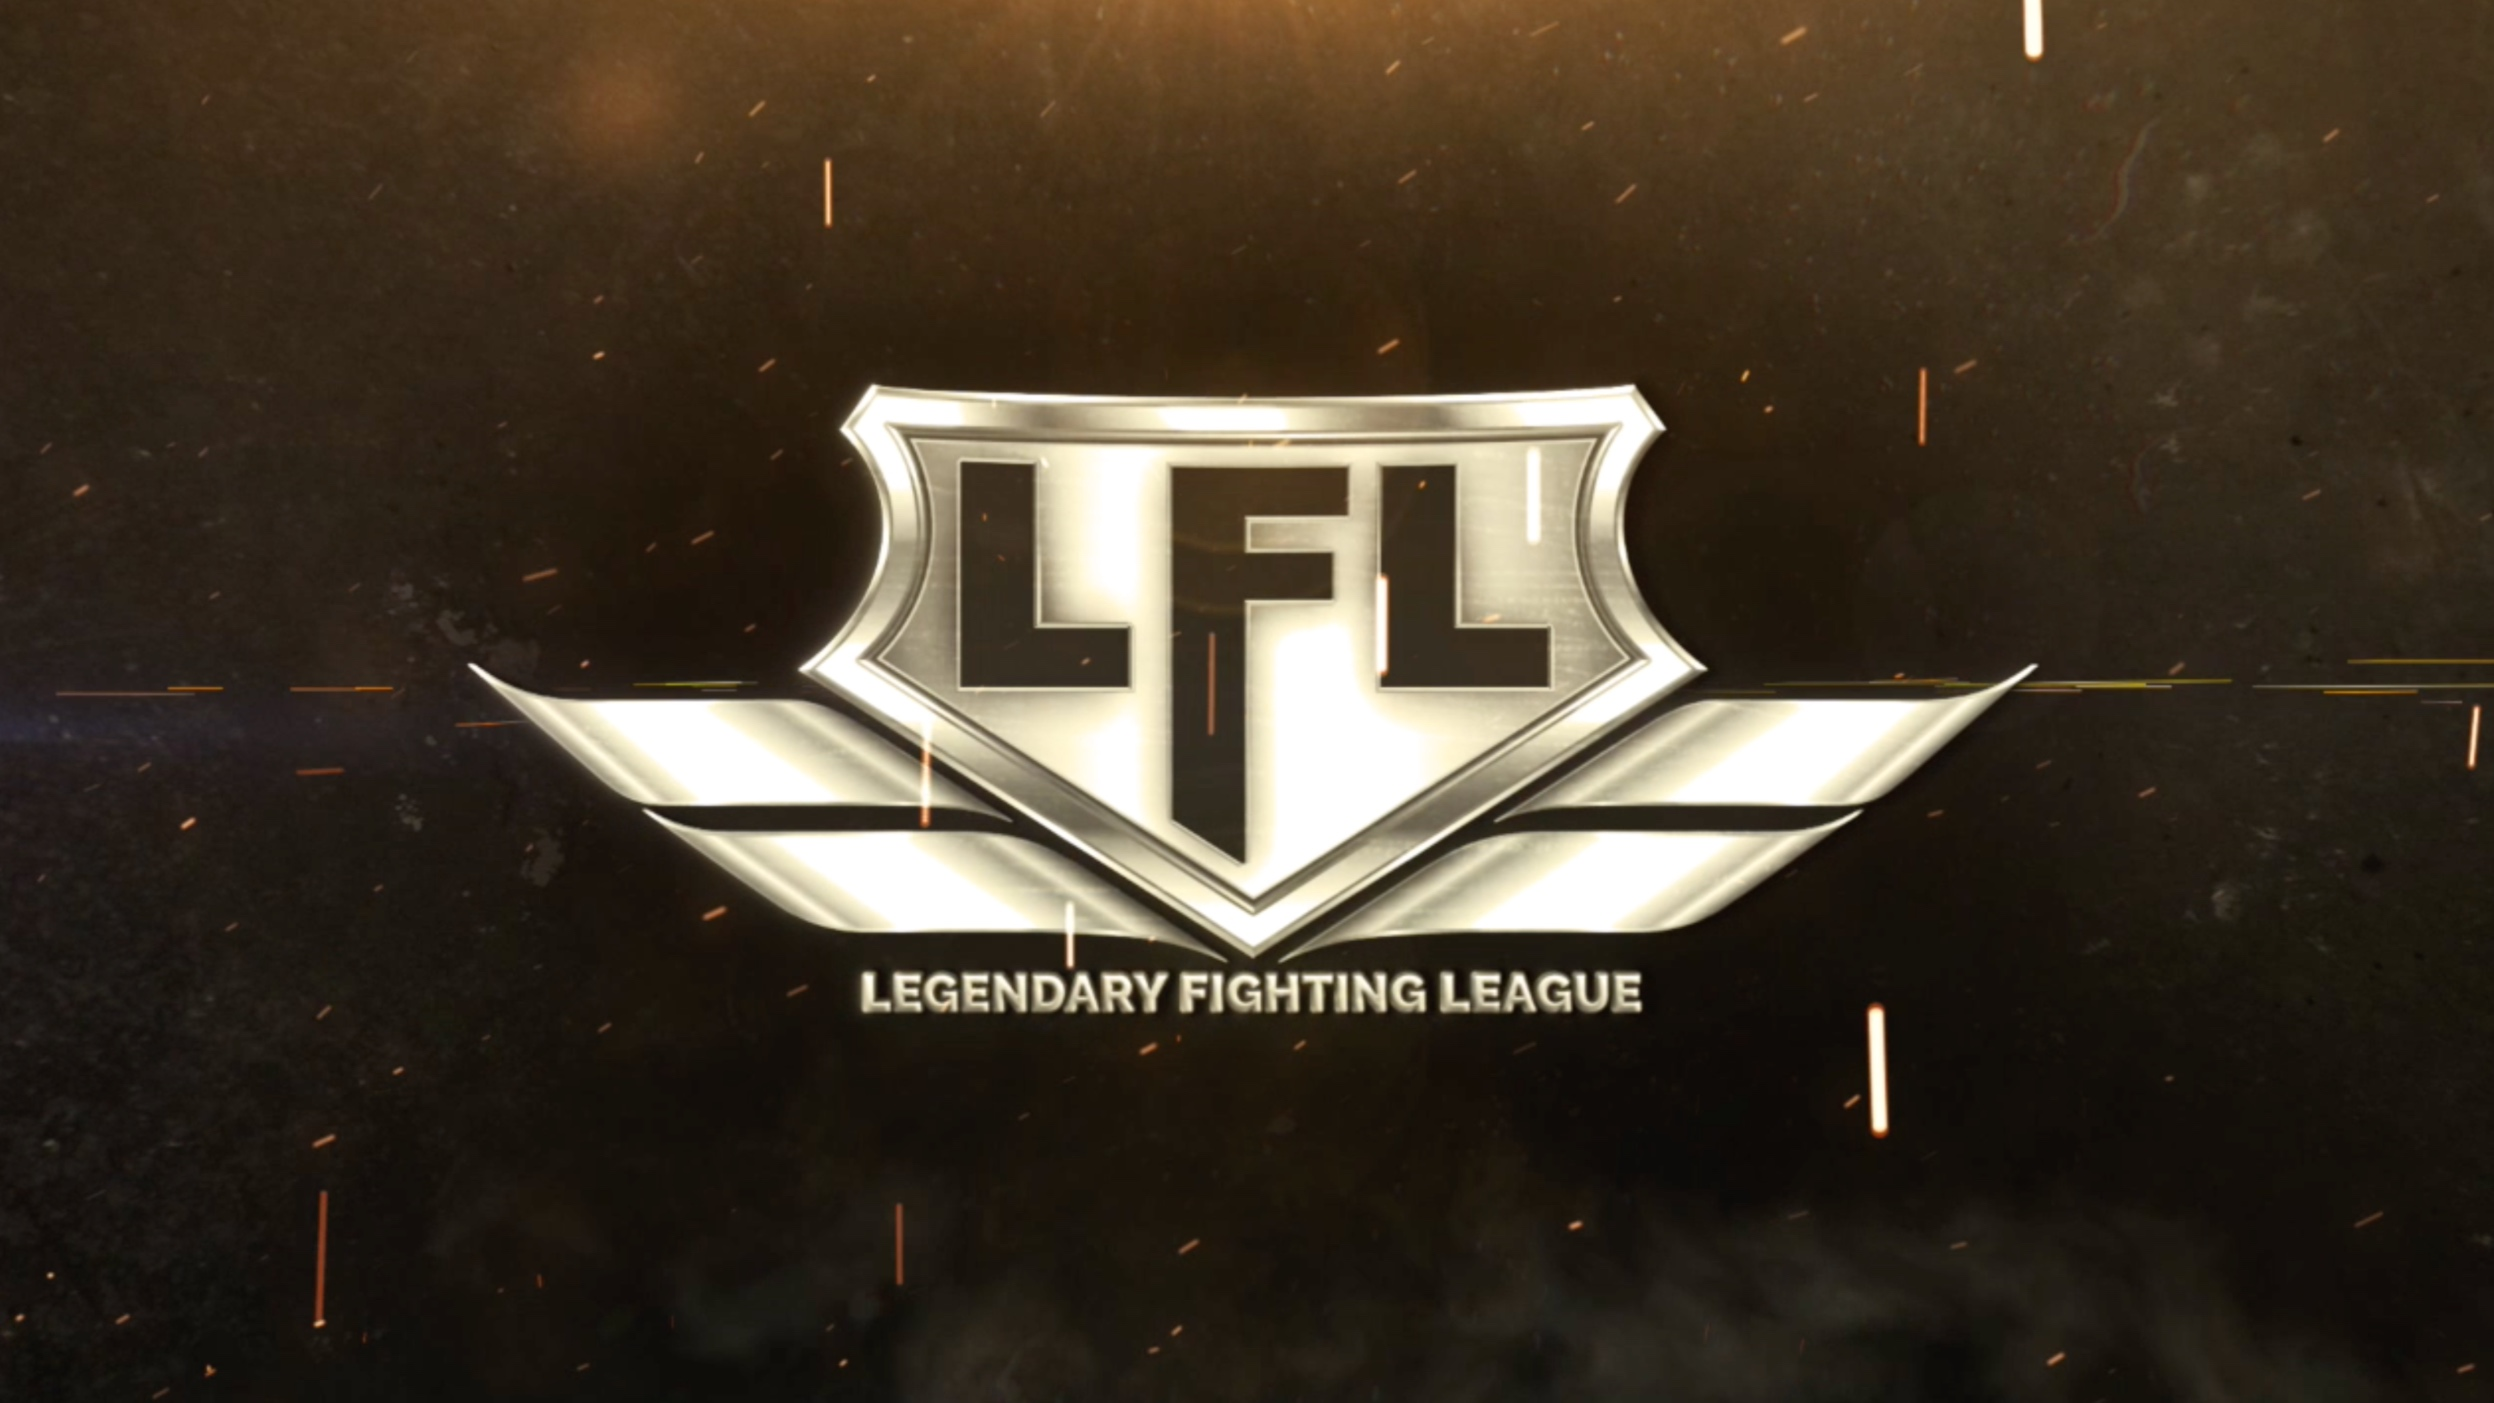 Legendary Fighting League - Festive Gala Fight Night…